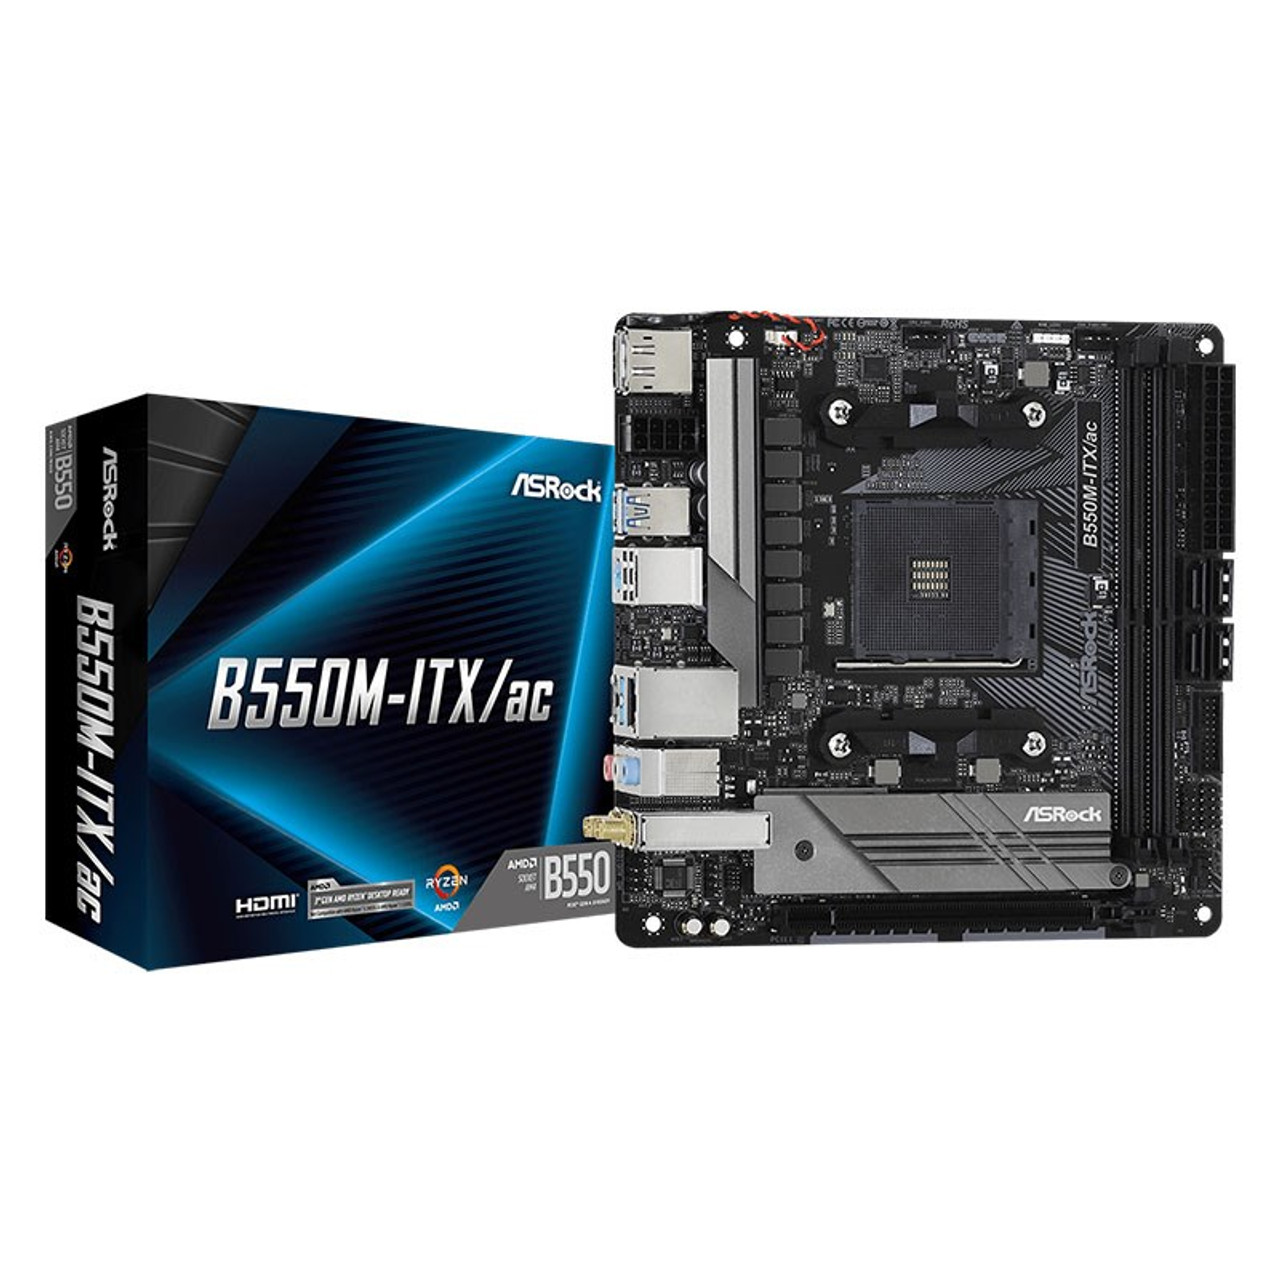 Image for ASRock B550M-ITX/ac AM4 Mini-ITX Motherboard CX Computer Superstore